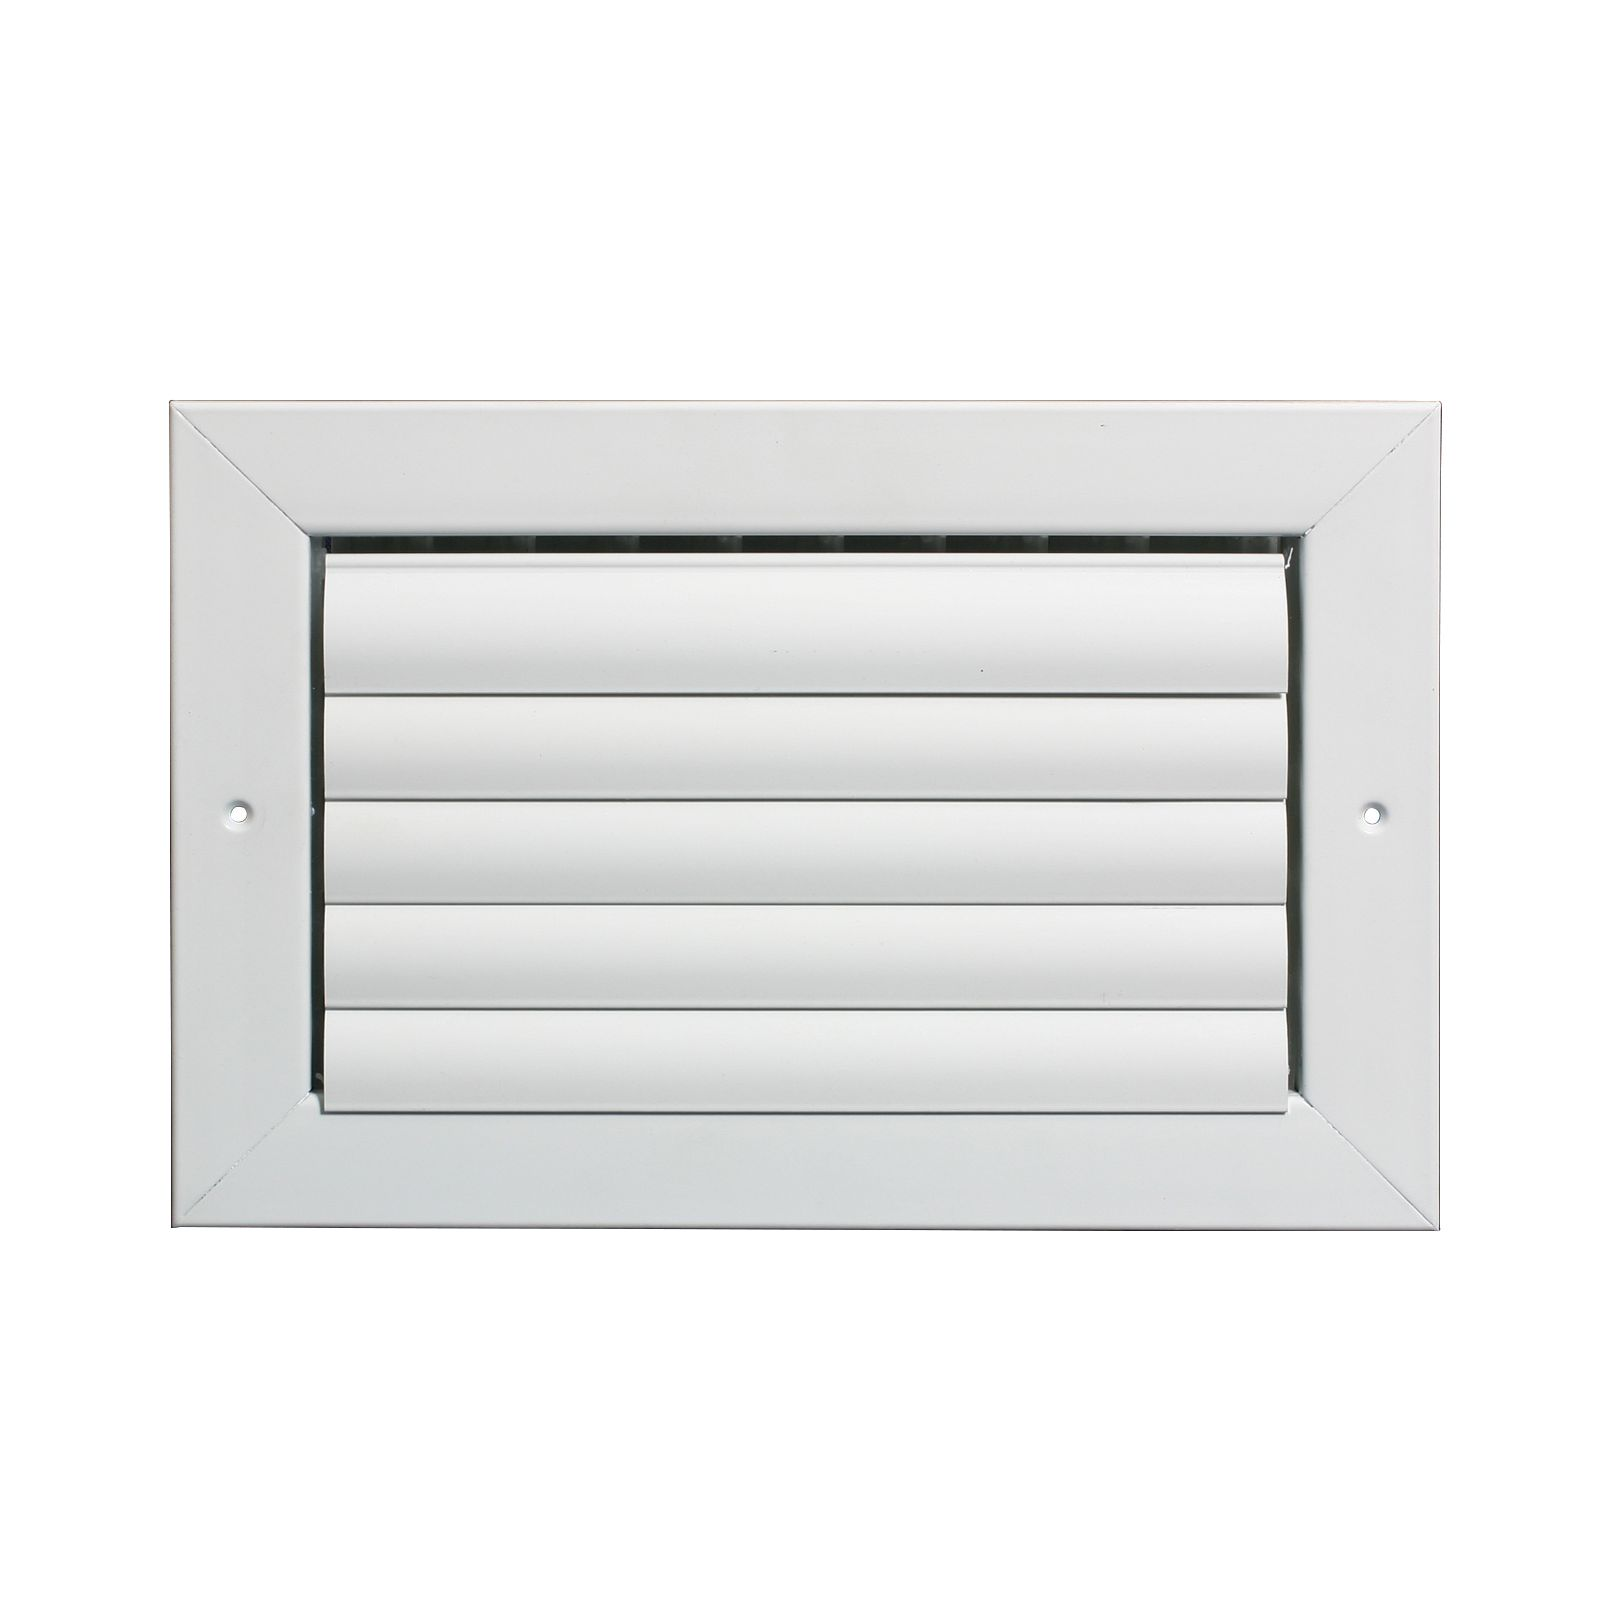 "Grille Tech CL1M1406 - Aluminum Ceiling 1-Way Deflection Supply, Multi-shutter 14"" X 6"" White"